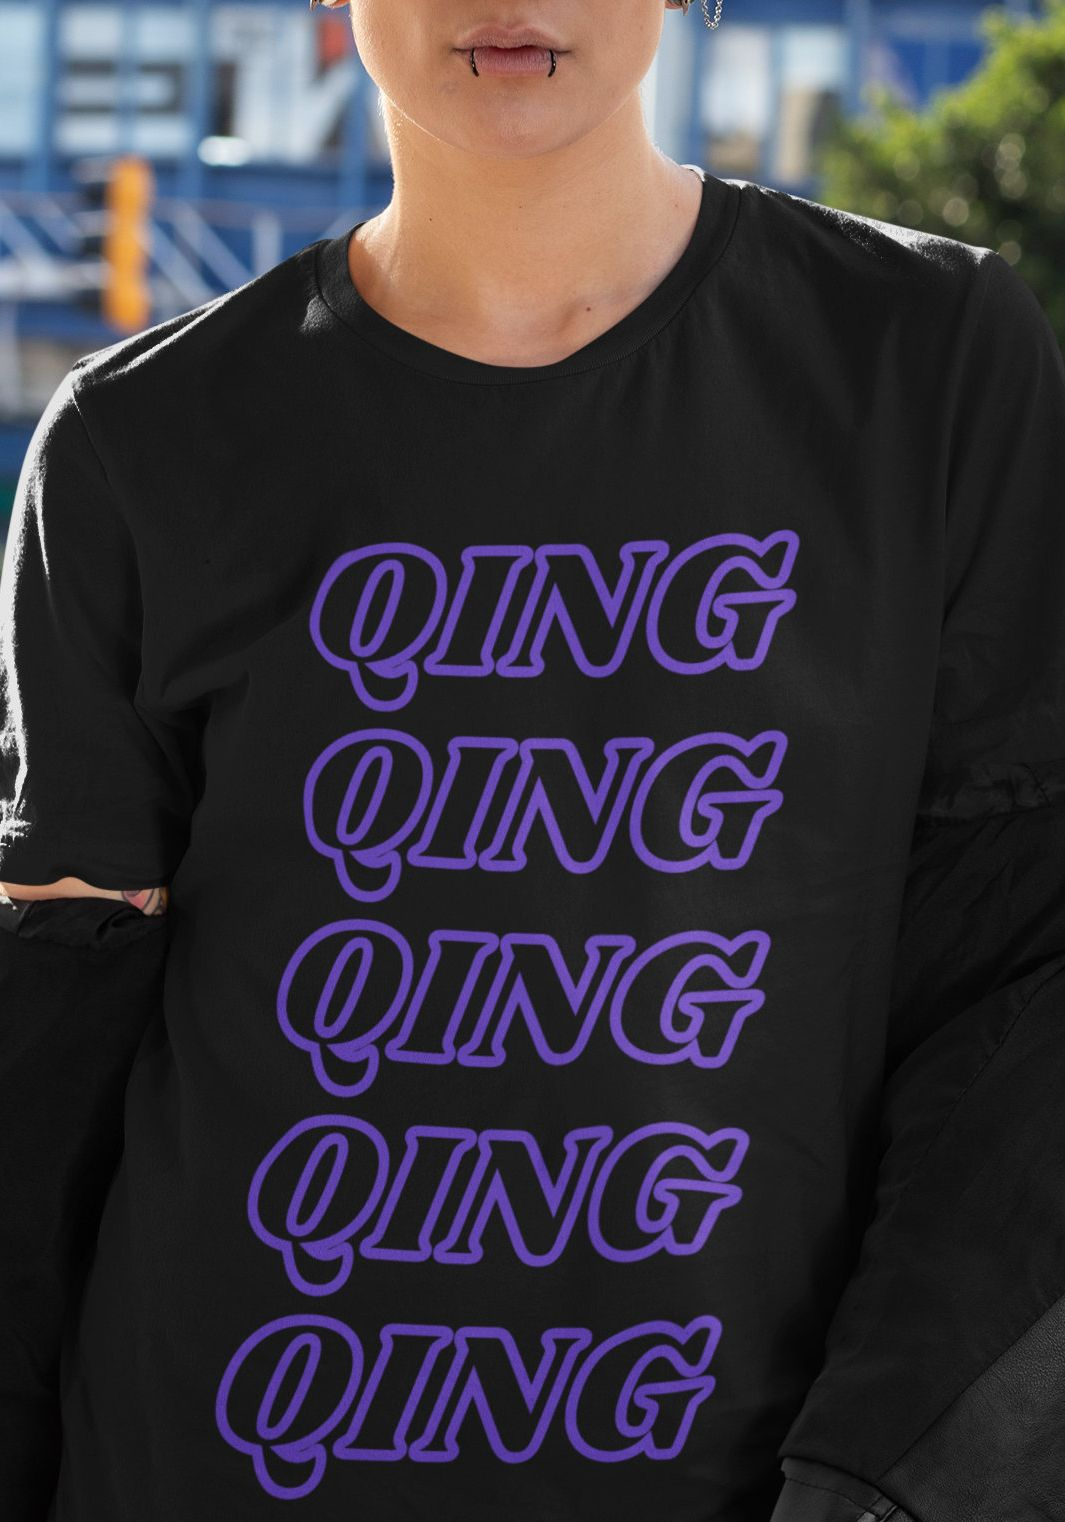 King Queen? But what about in between? QING Non-binary Pronouns T-shirt #lgbtqpride #genderqueer #nonbinarygifts #pronounsshirt #theythentheirs #qing #nonbinaryfashion #tomboystyle #lesbianfashion #genderfluid #femmemasculine